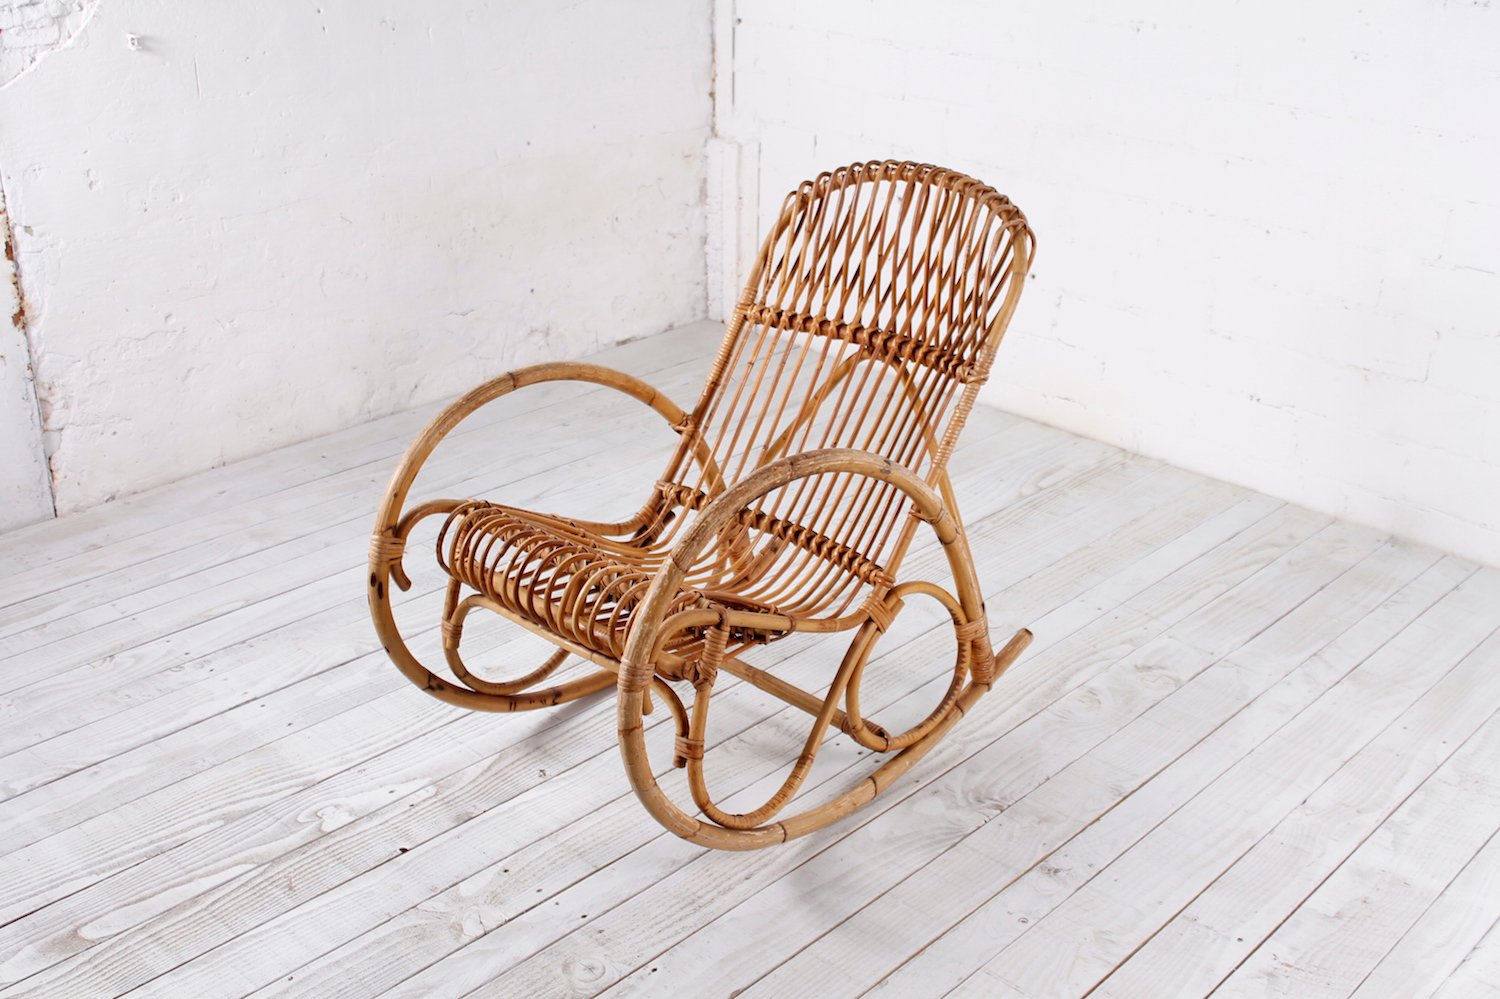 Bamboo rocking chair - Vintage Bamboo Rocking Chair 1950s